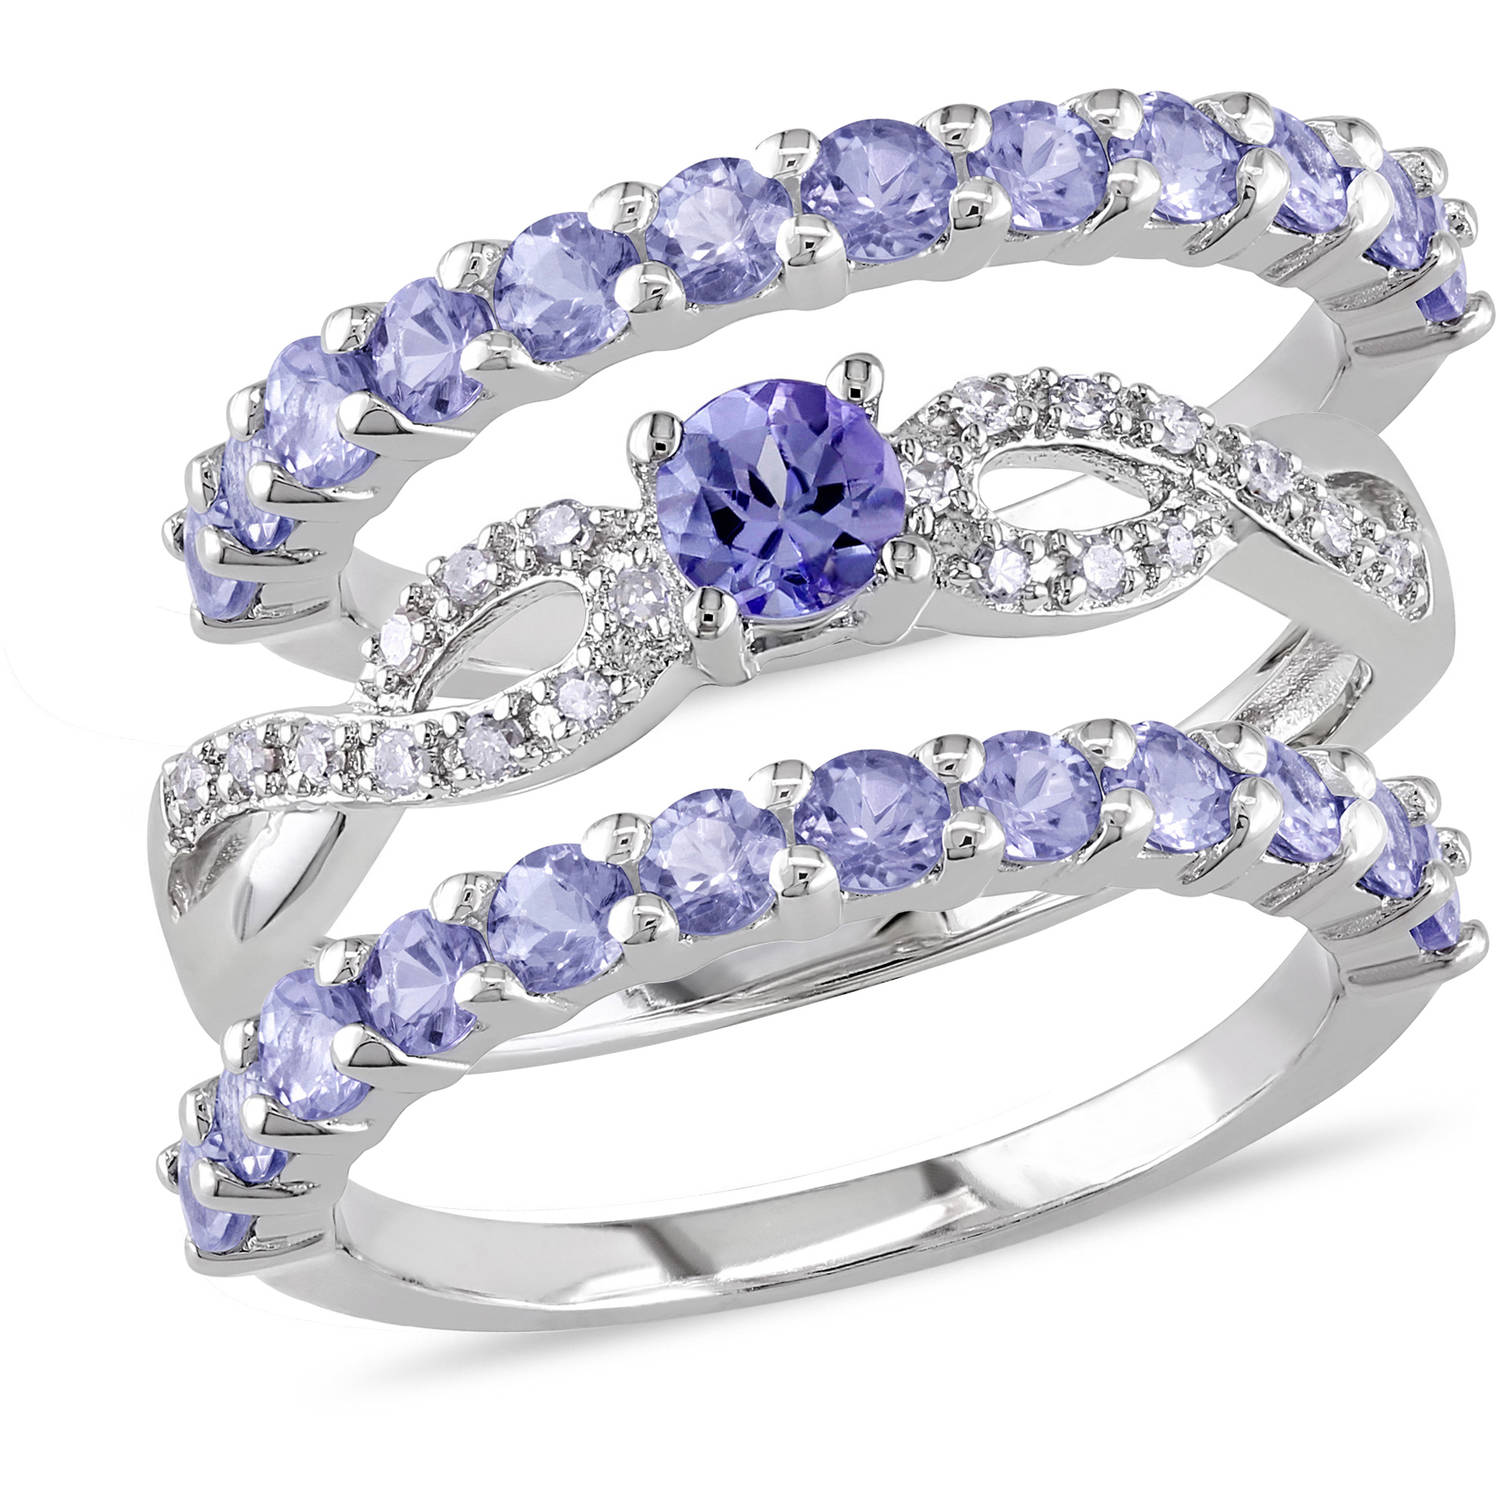 Tangelo 2 Carat T.G.W. Tanzanite and 1 10 Carat T.W. Diamond Sterling Silver Infinity Design Semi-Eternity Ring Set by Tangelo